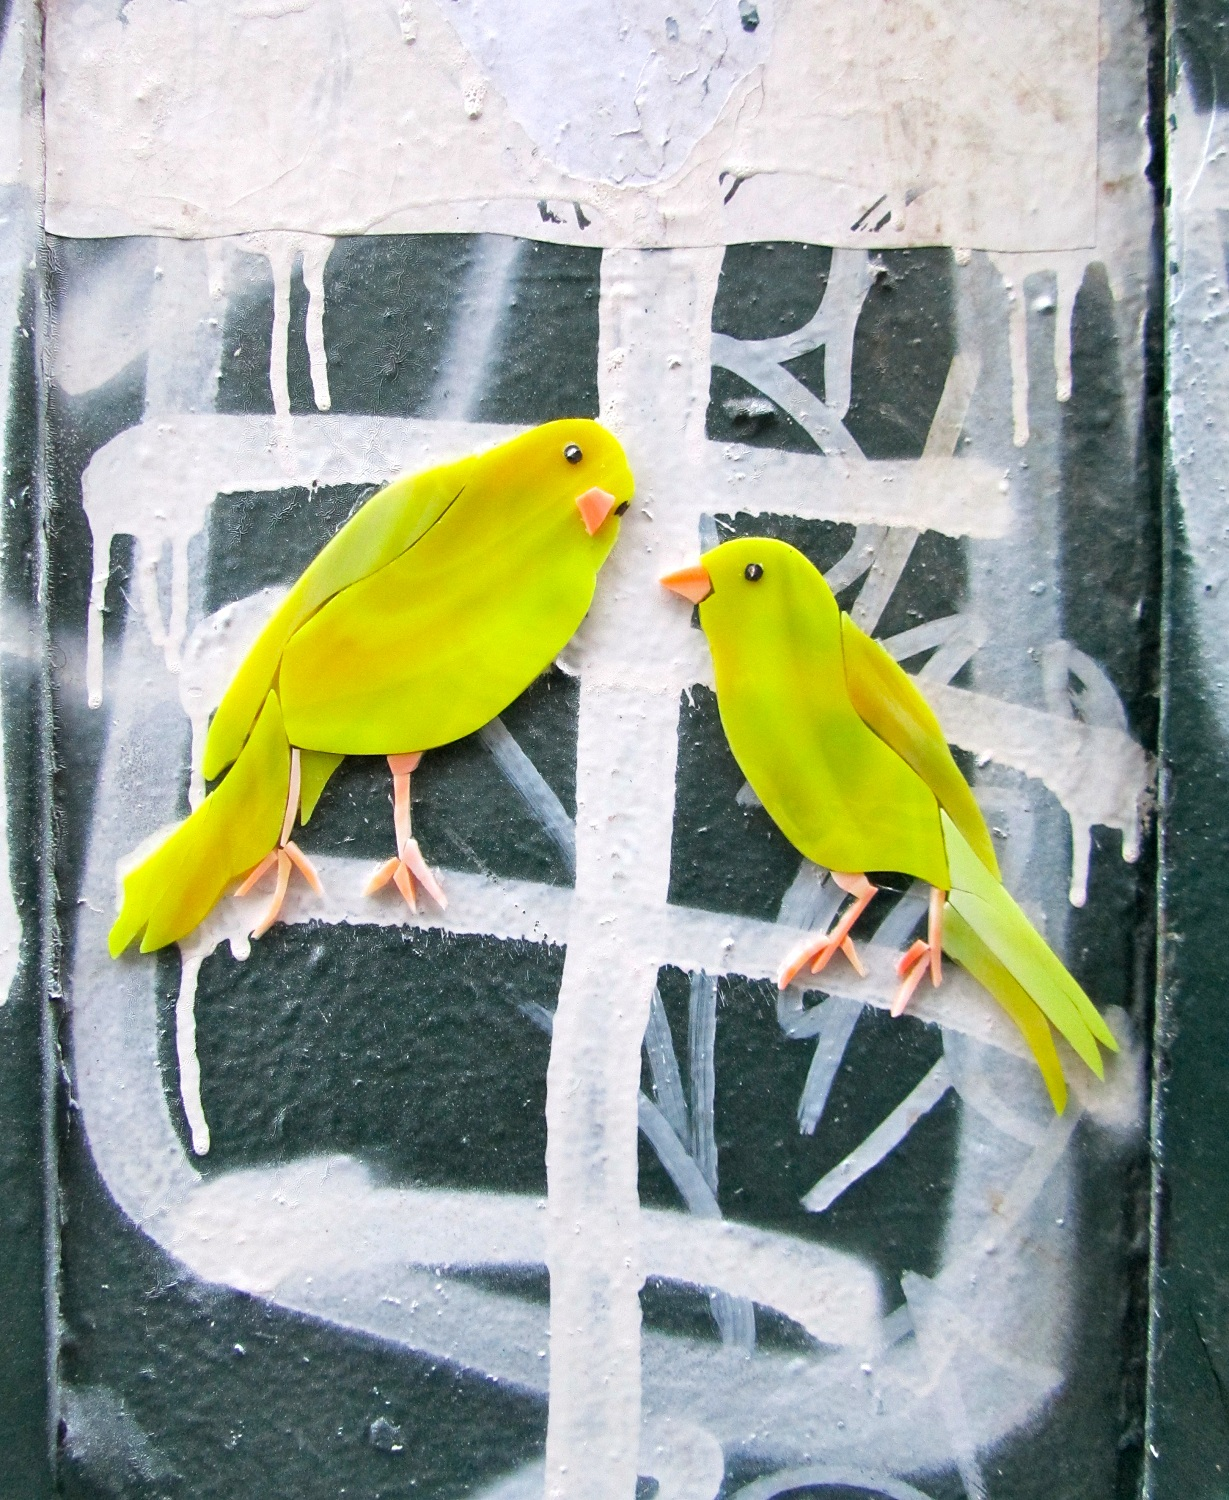 Wing-street-art-glass-mosaic-canaries-detail.jpg